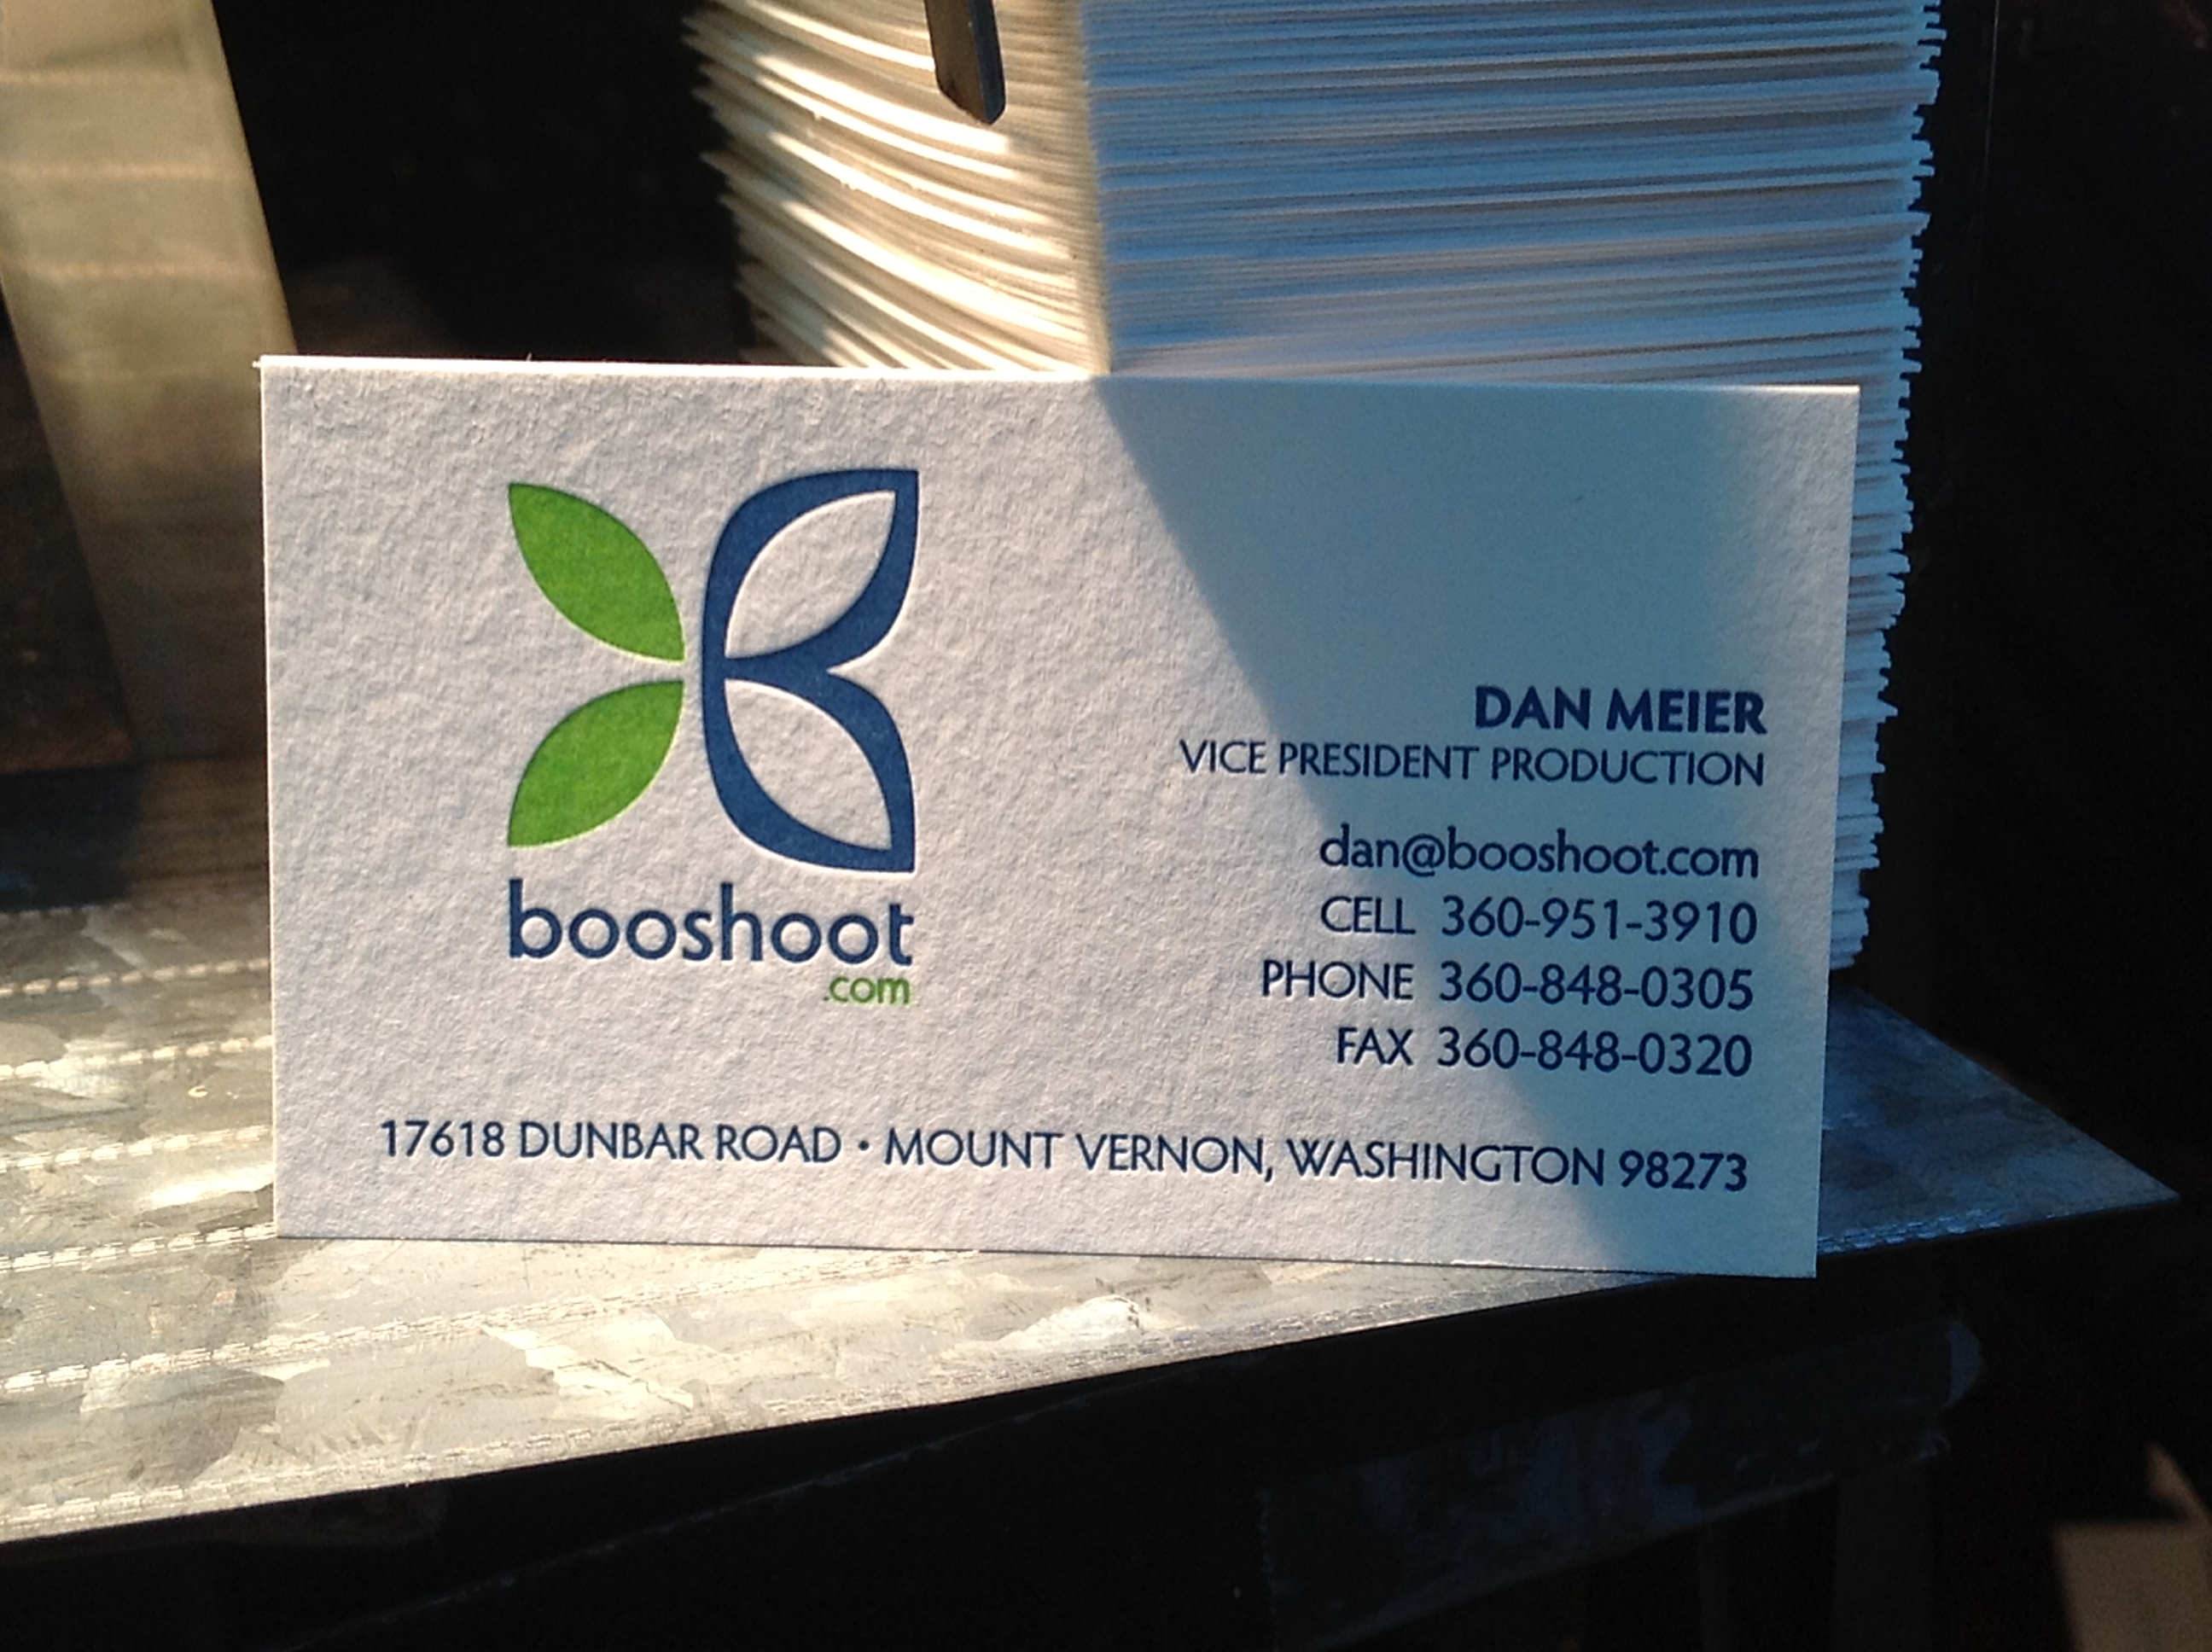 Booshoot business cards